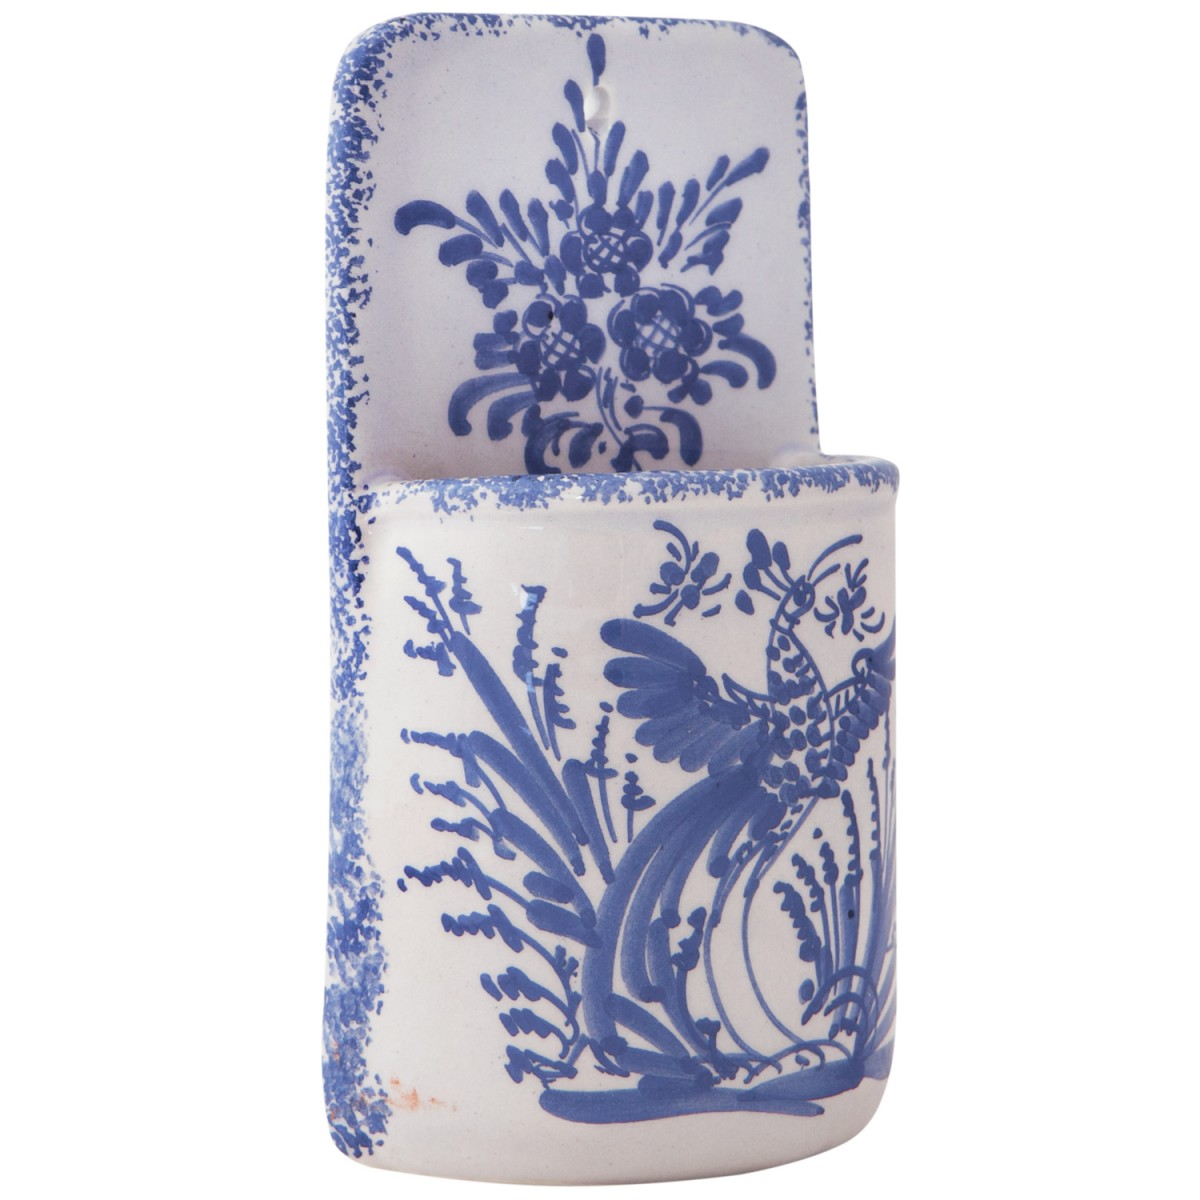 Hand_Painted_Blue_and_White_Hanging_Spoon_Rest-Peacock-Skyriana_Ceramics-1